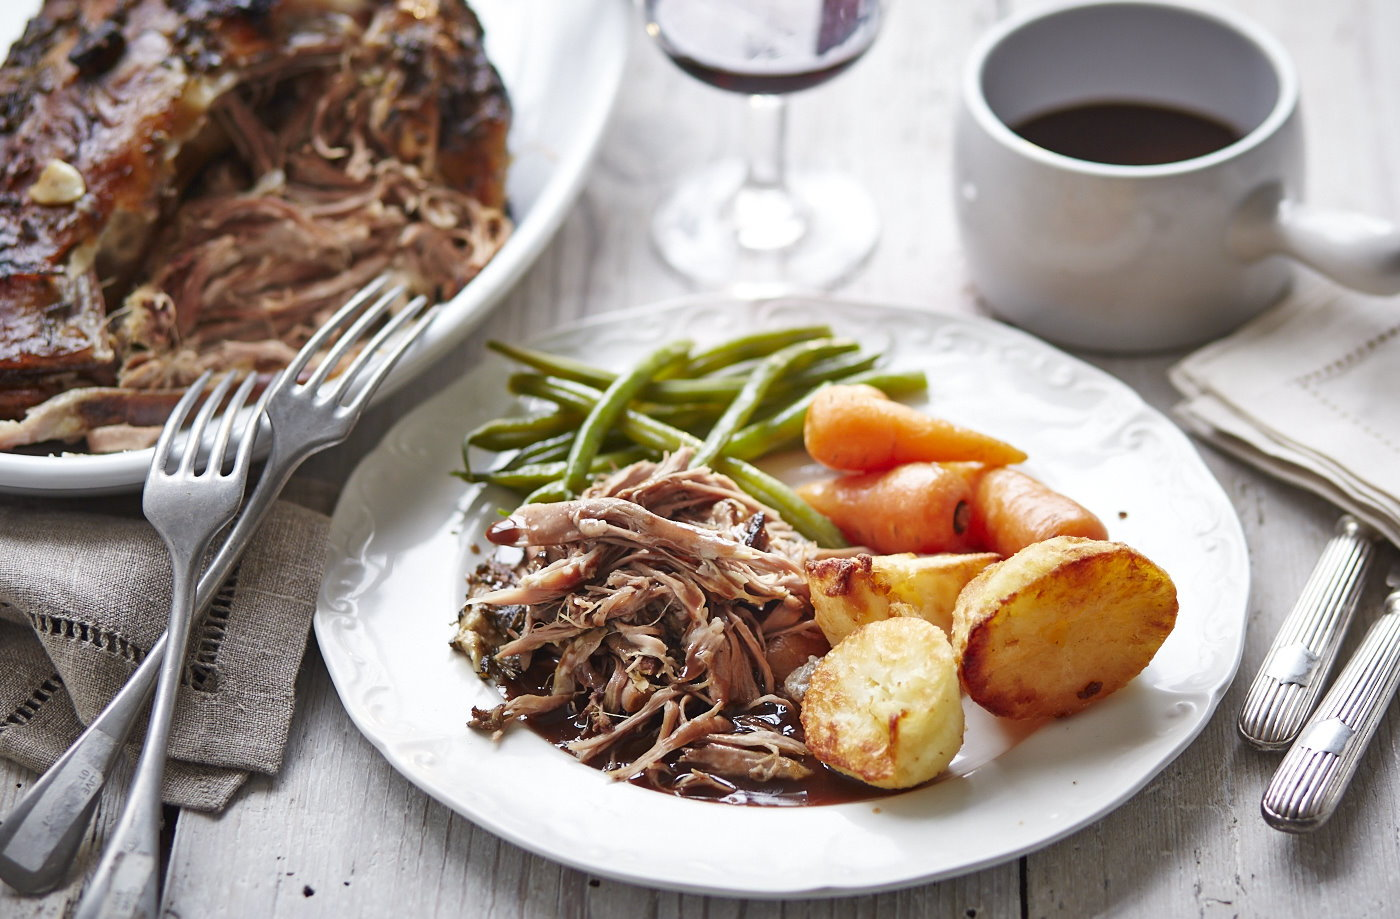 Slow roasted lamb shoulder with rosemary